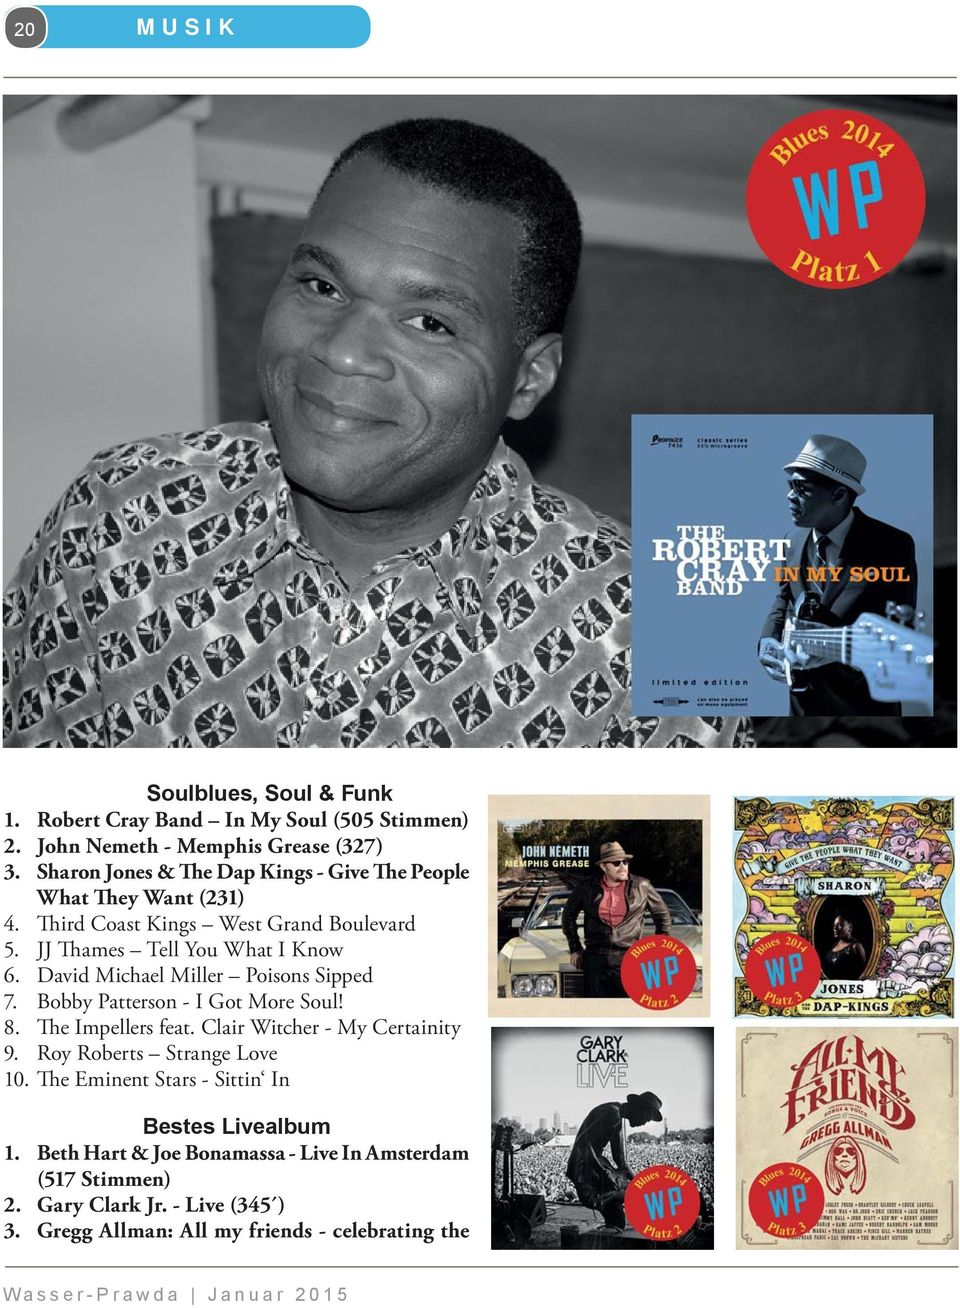 David Michael Miller Poisons Sipped 7. Bobby Patterson - I Got More Soul! 8. The Impellers feat. Clair Witcher - My Certainity 9.